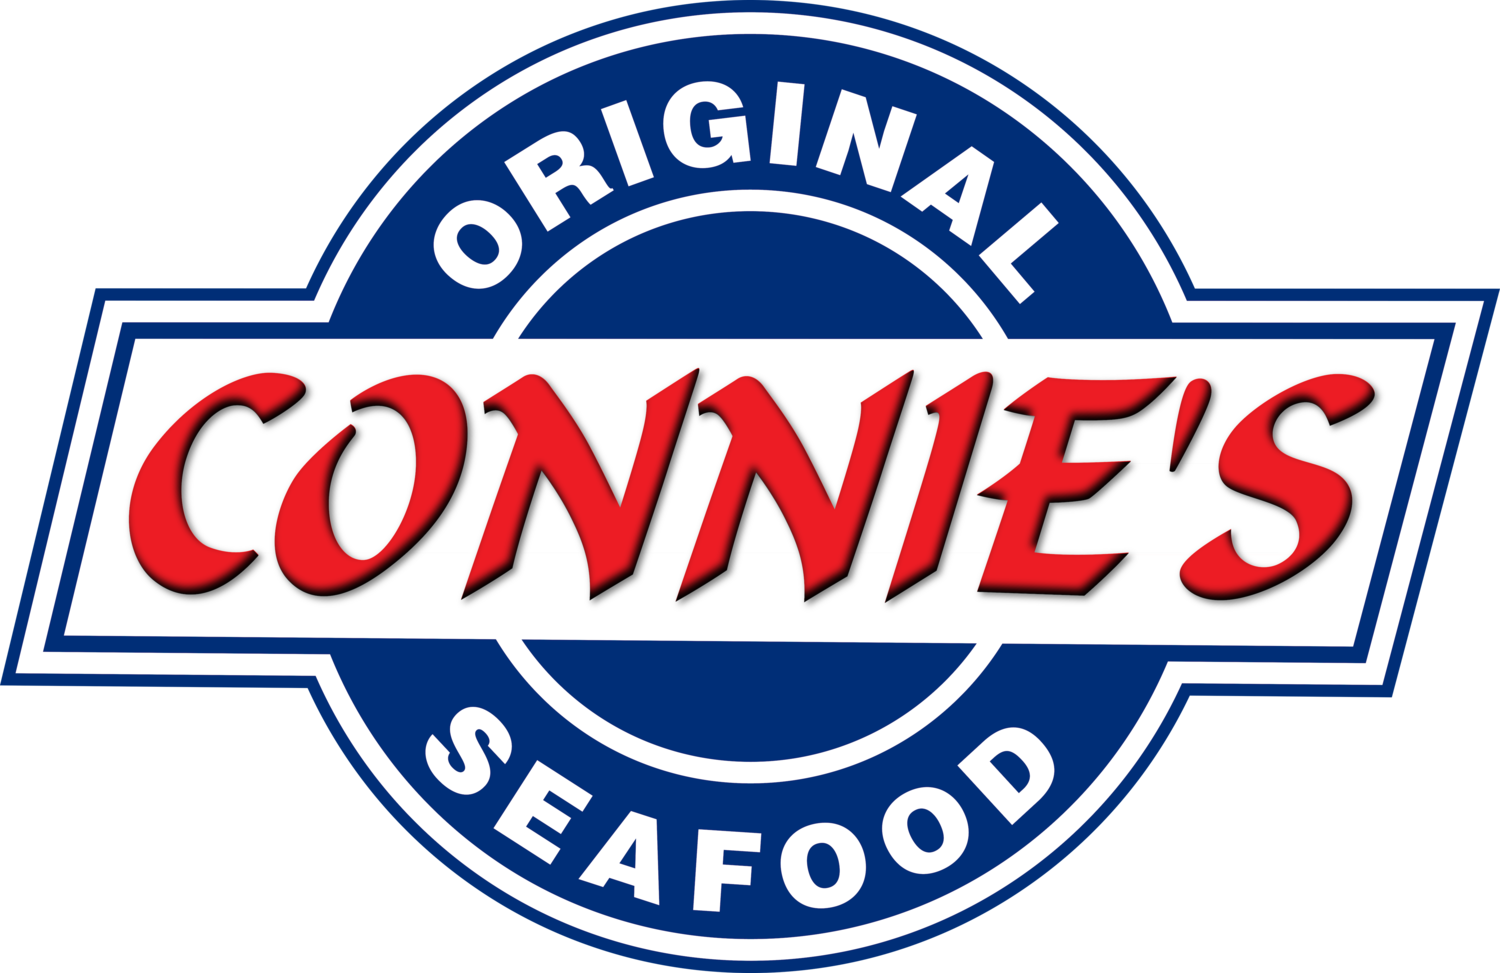 Connie's Seafood